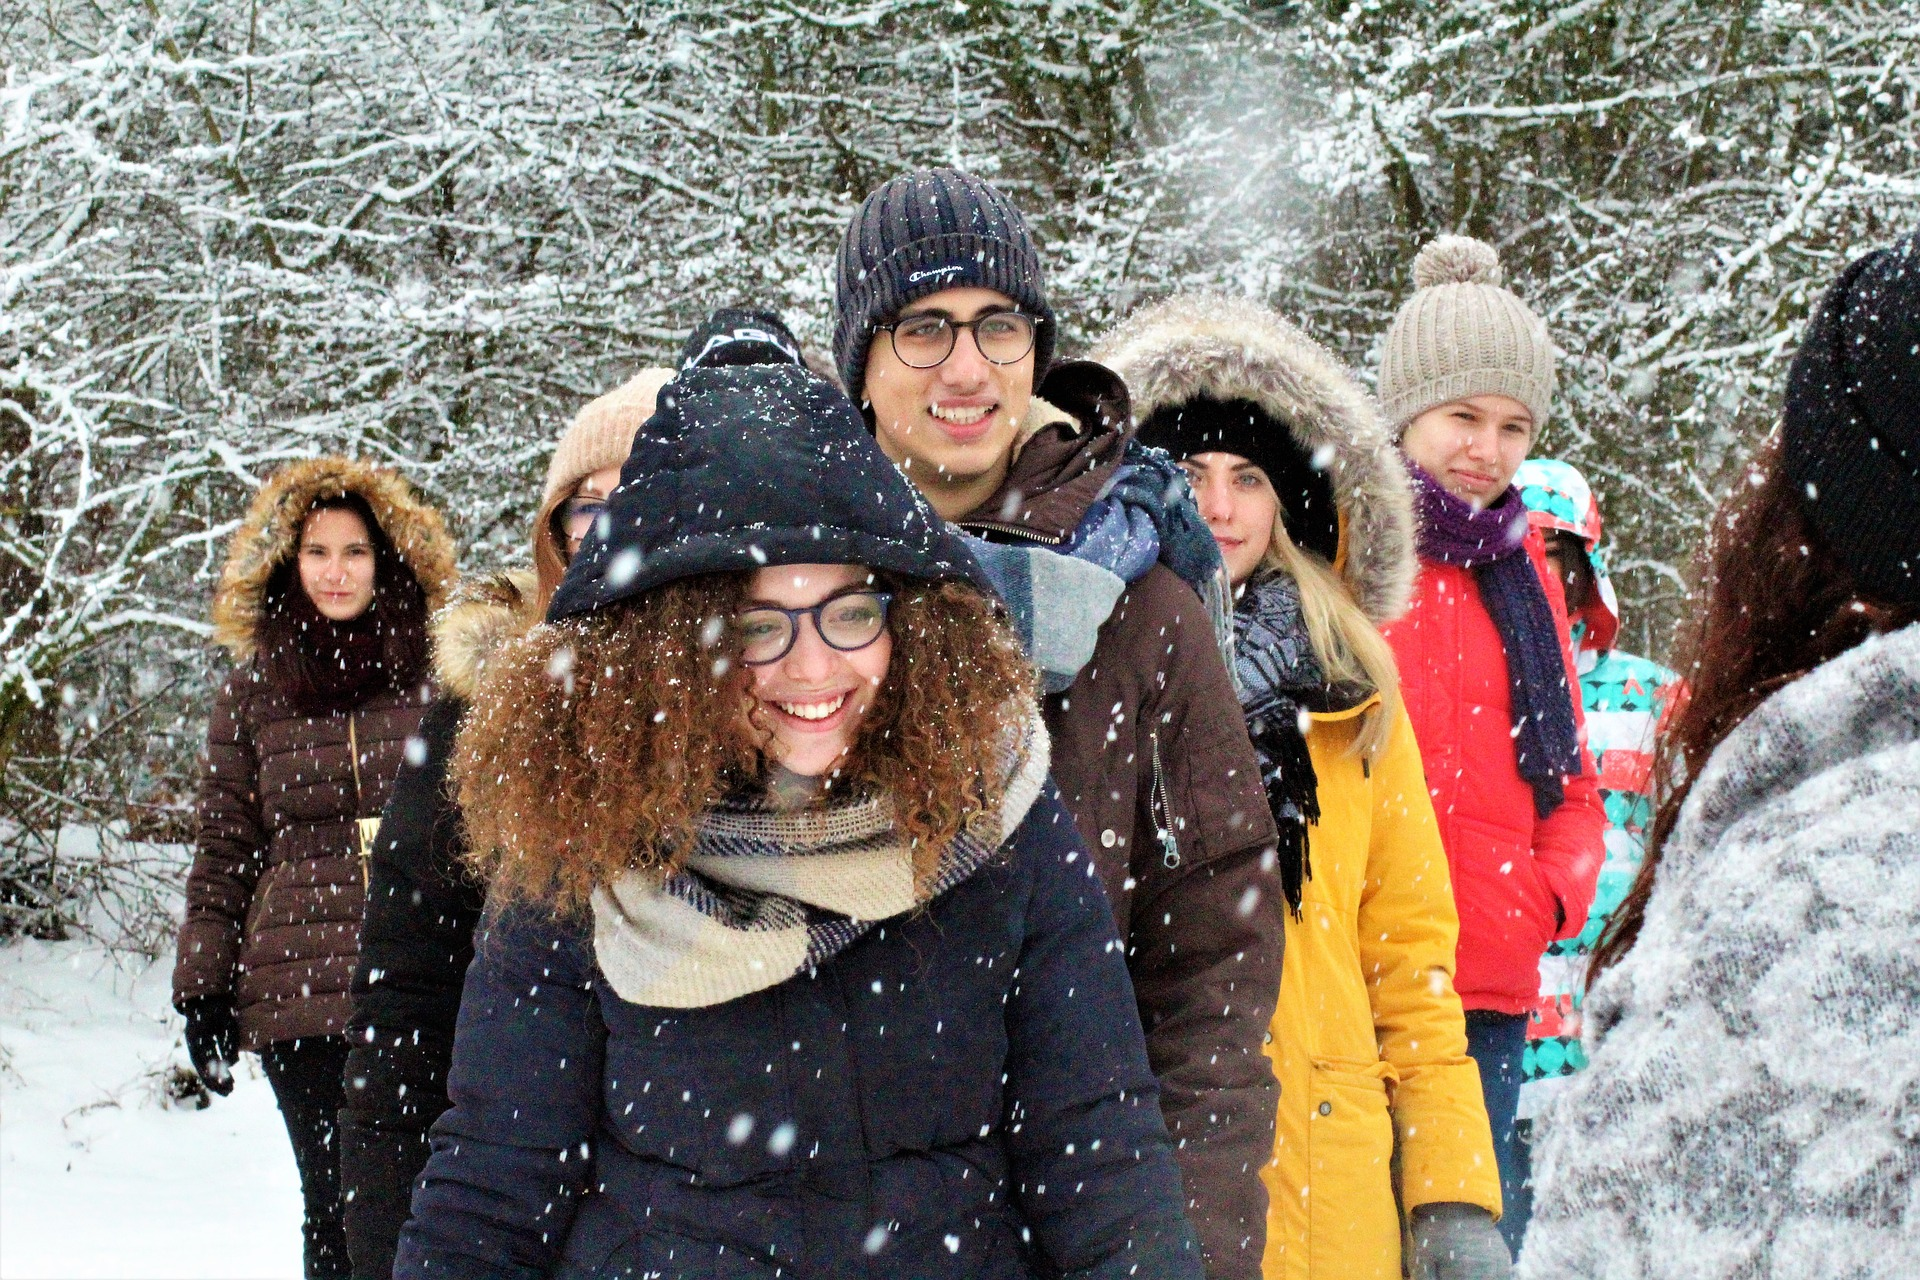 Students standing in the snow.